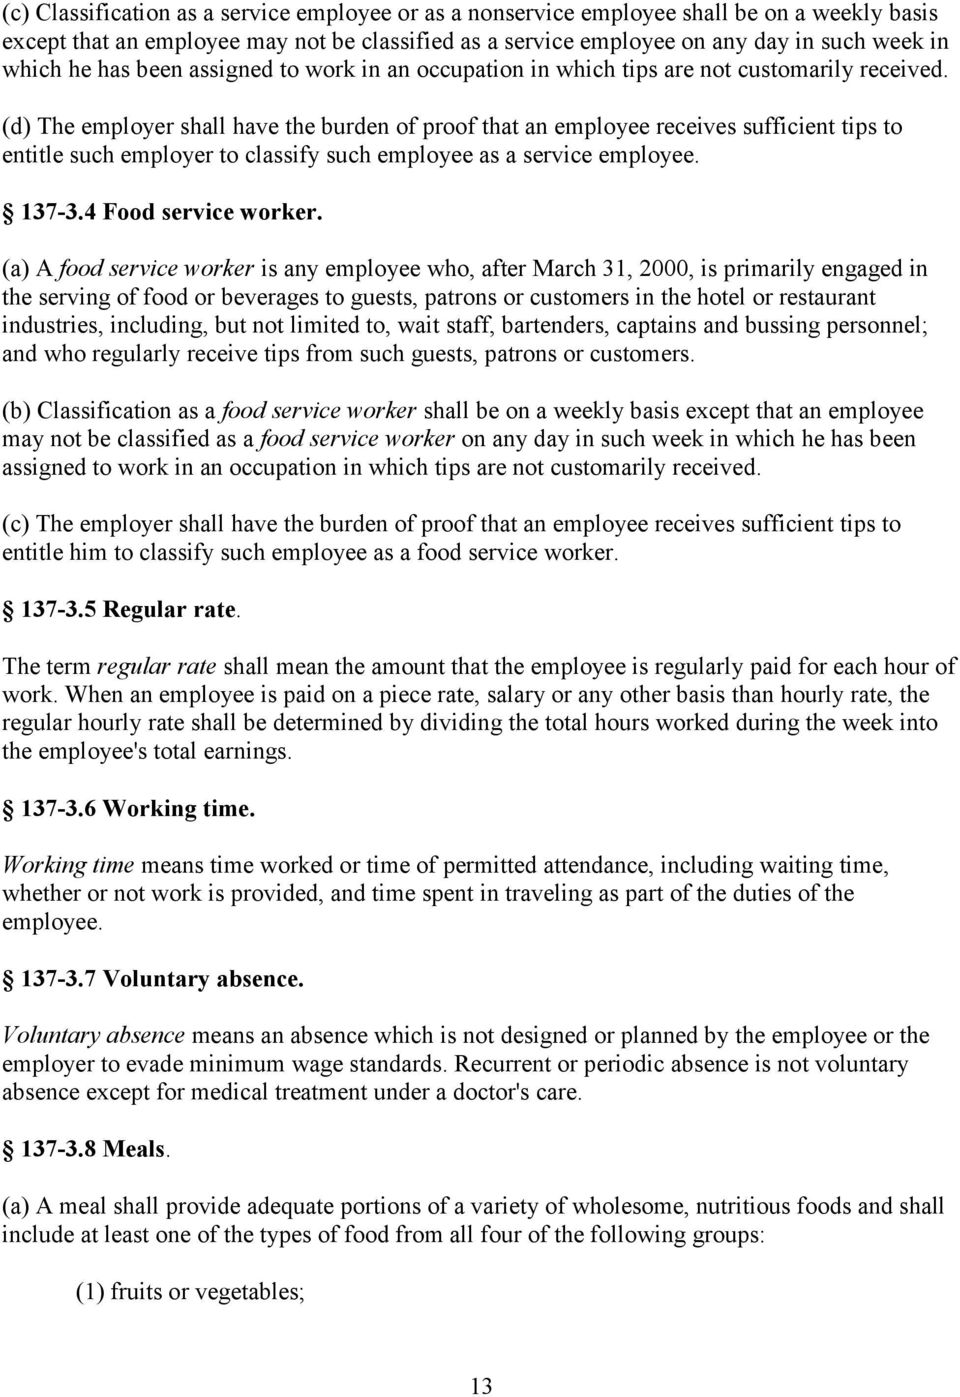 (d) The employer shall have the burden of proof that an employee receives sufficient tips to entitle such employer to classify such employee as a service employee. 137-3.4 Food service worker.